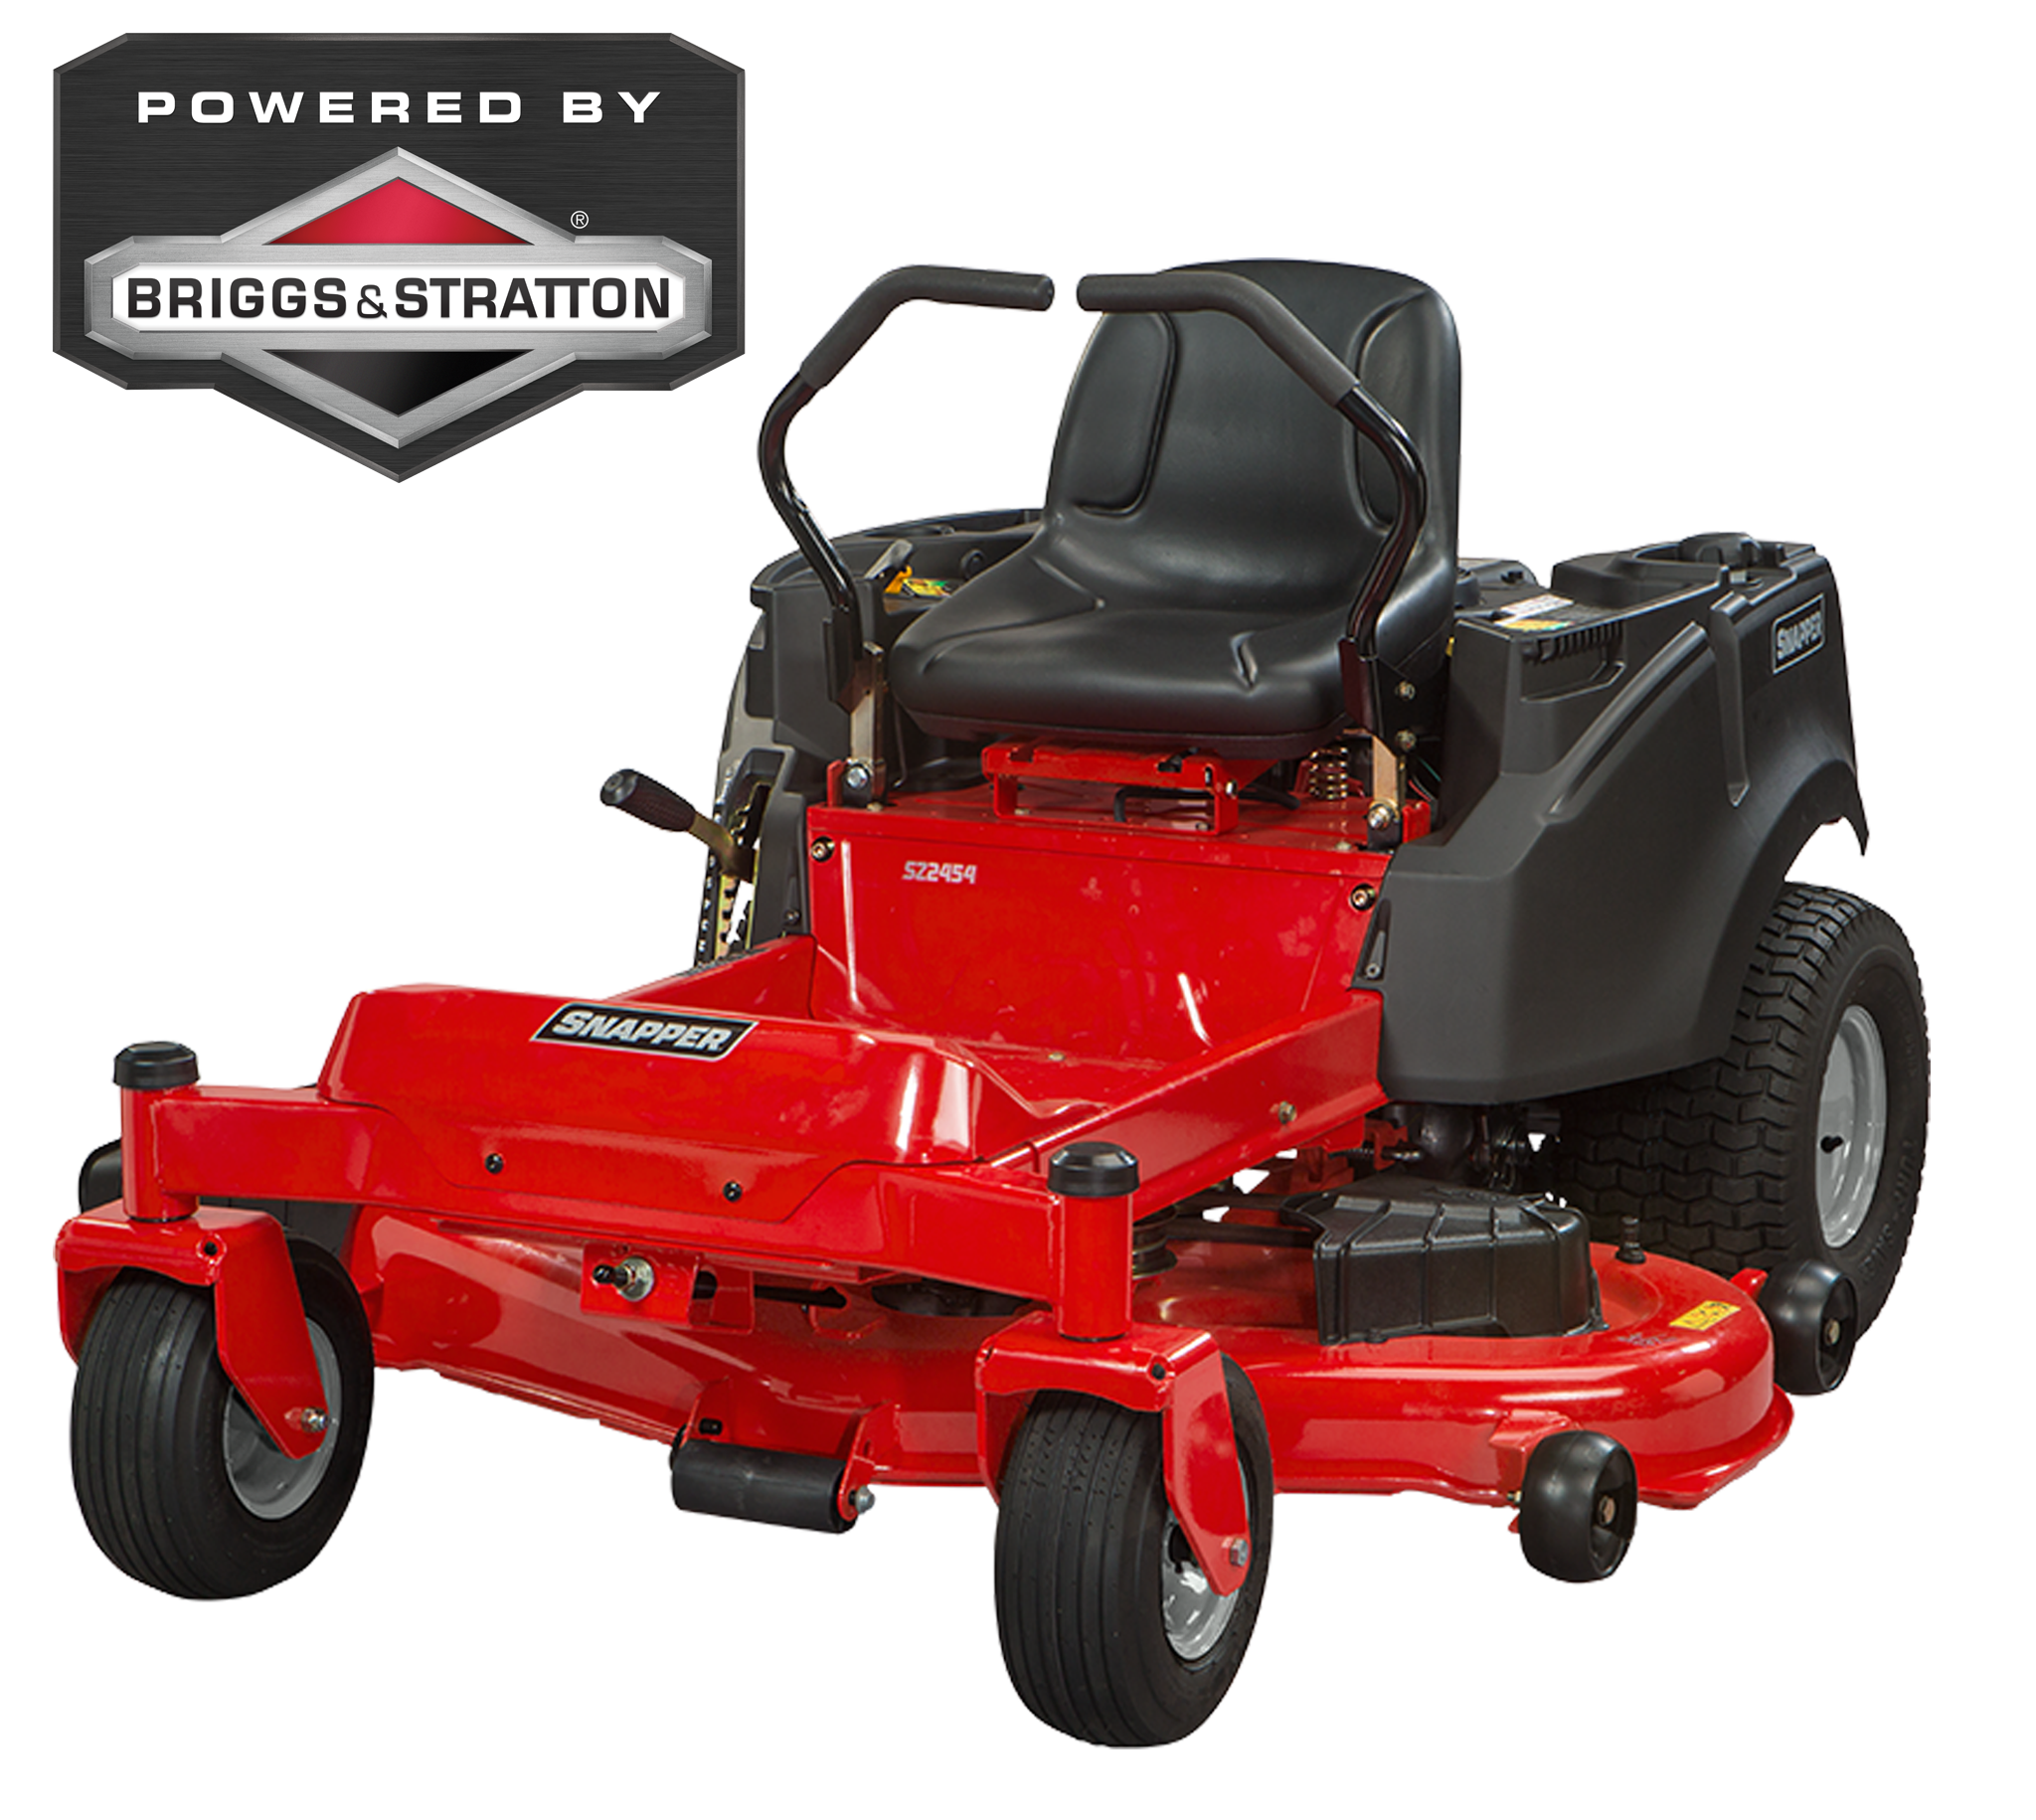 Zero Turn Mower Drawing At Free For Personal Use Ferris Seat Switch Wiring Diagram 2048x1831 Snapper 54 24 Hp Riding